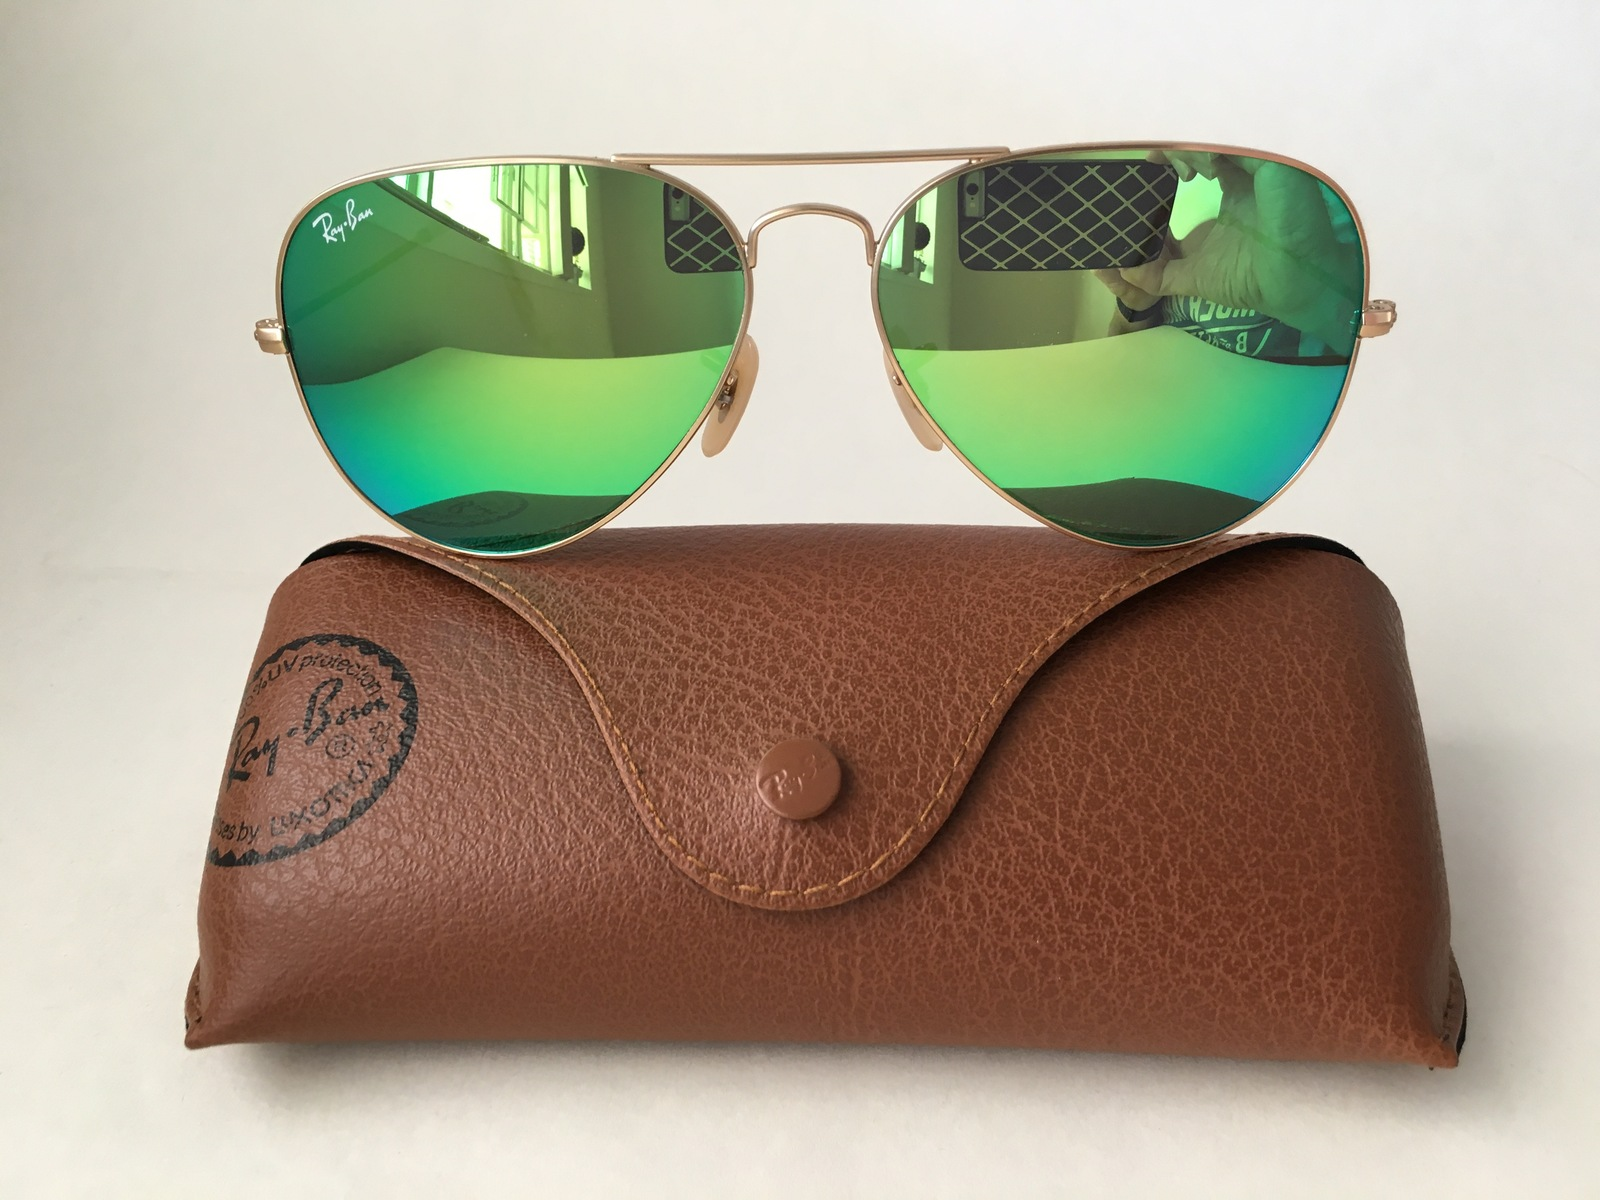 7aafe792f3 11219 1. 11219 1. Previous. Ray Ban Aviator RB3025 112 19 58mm Sunglasses  Gold With Green Mirror Lens